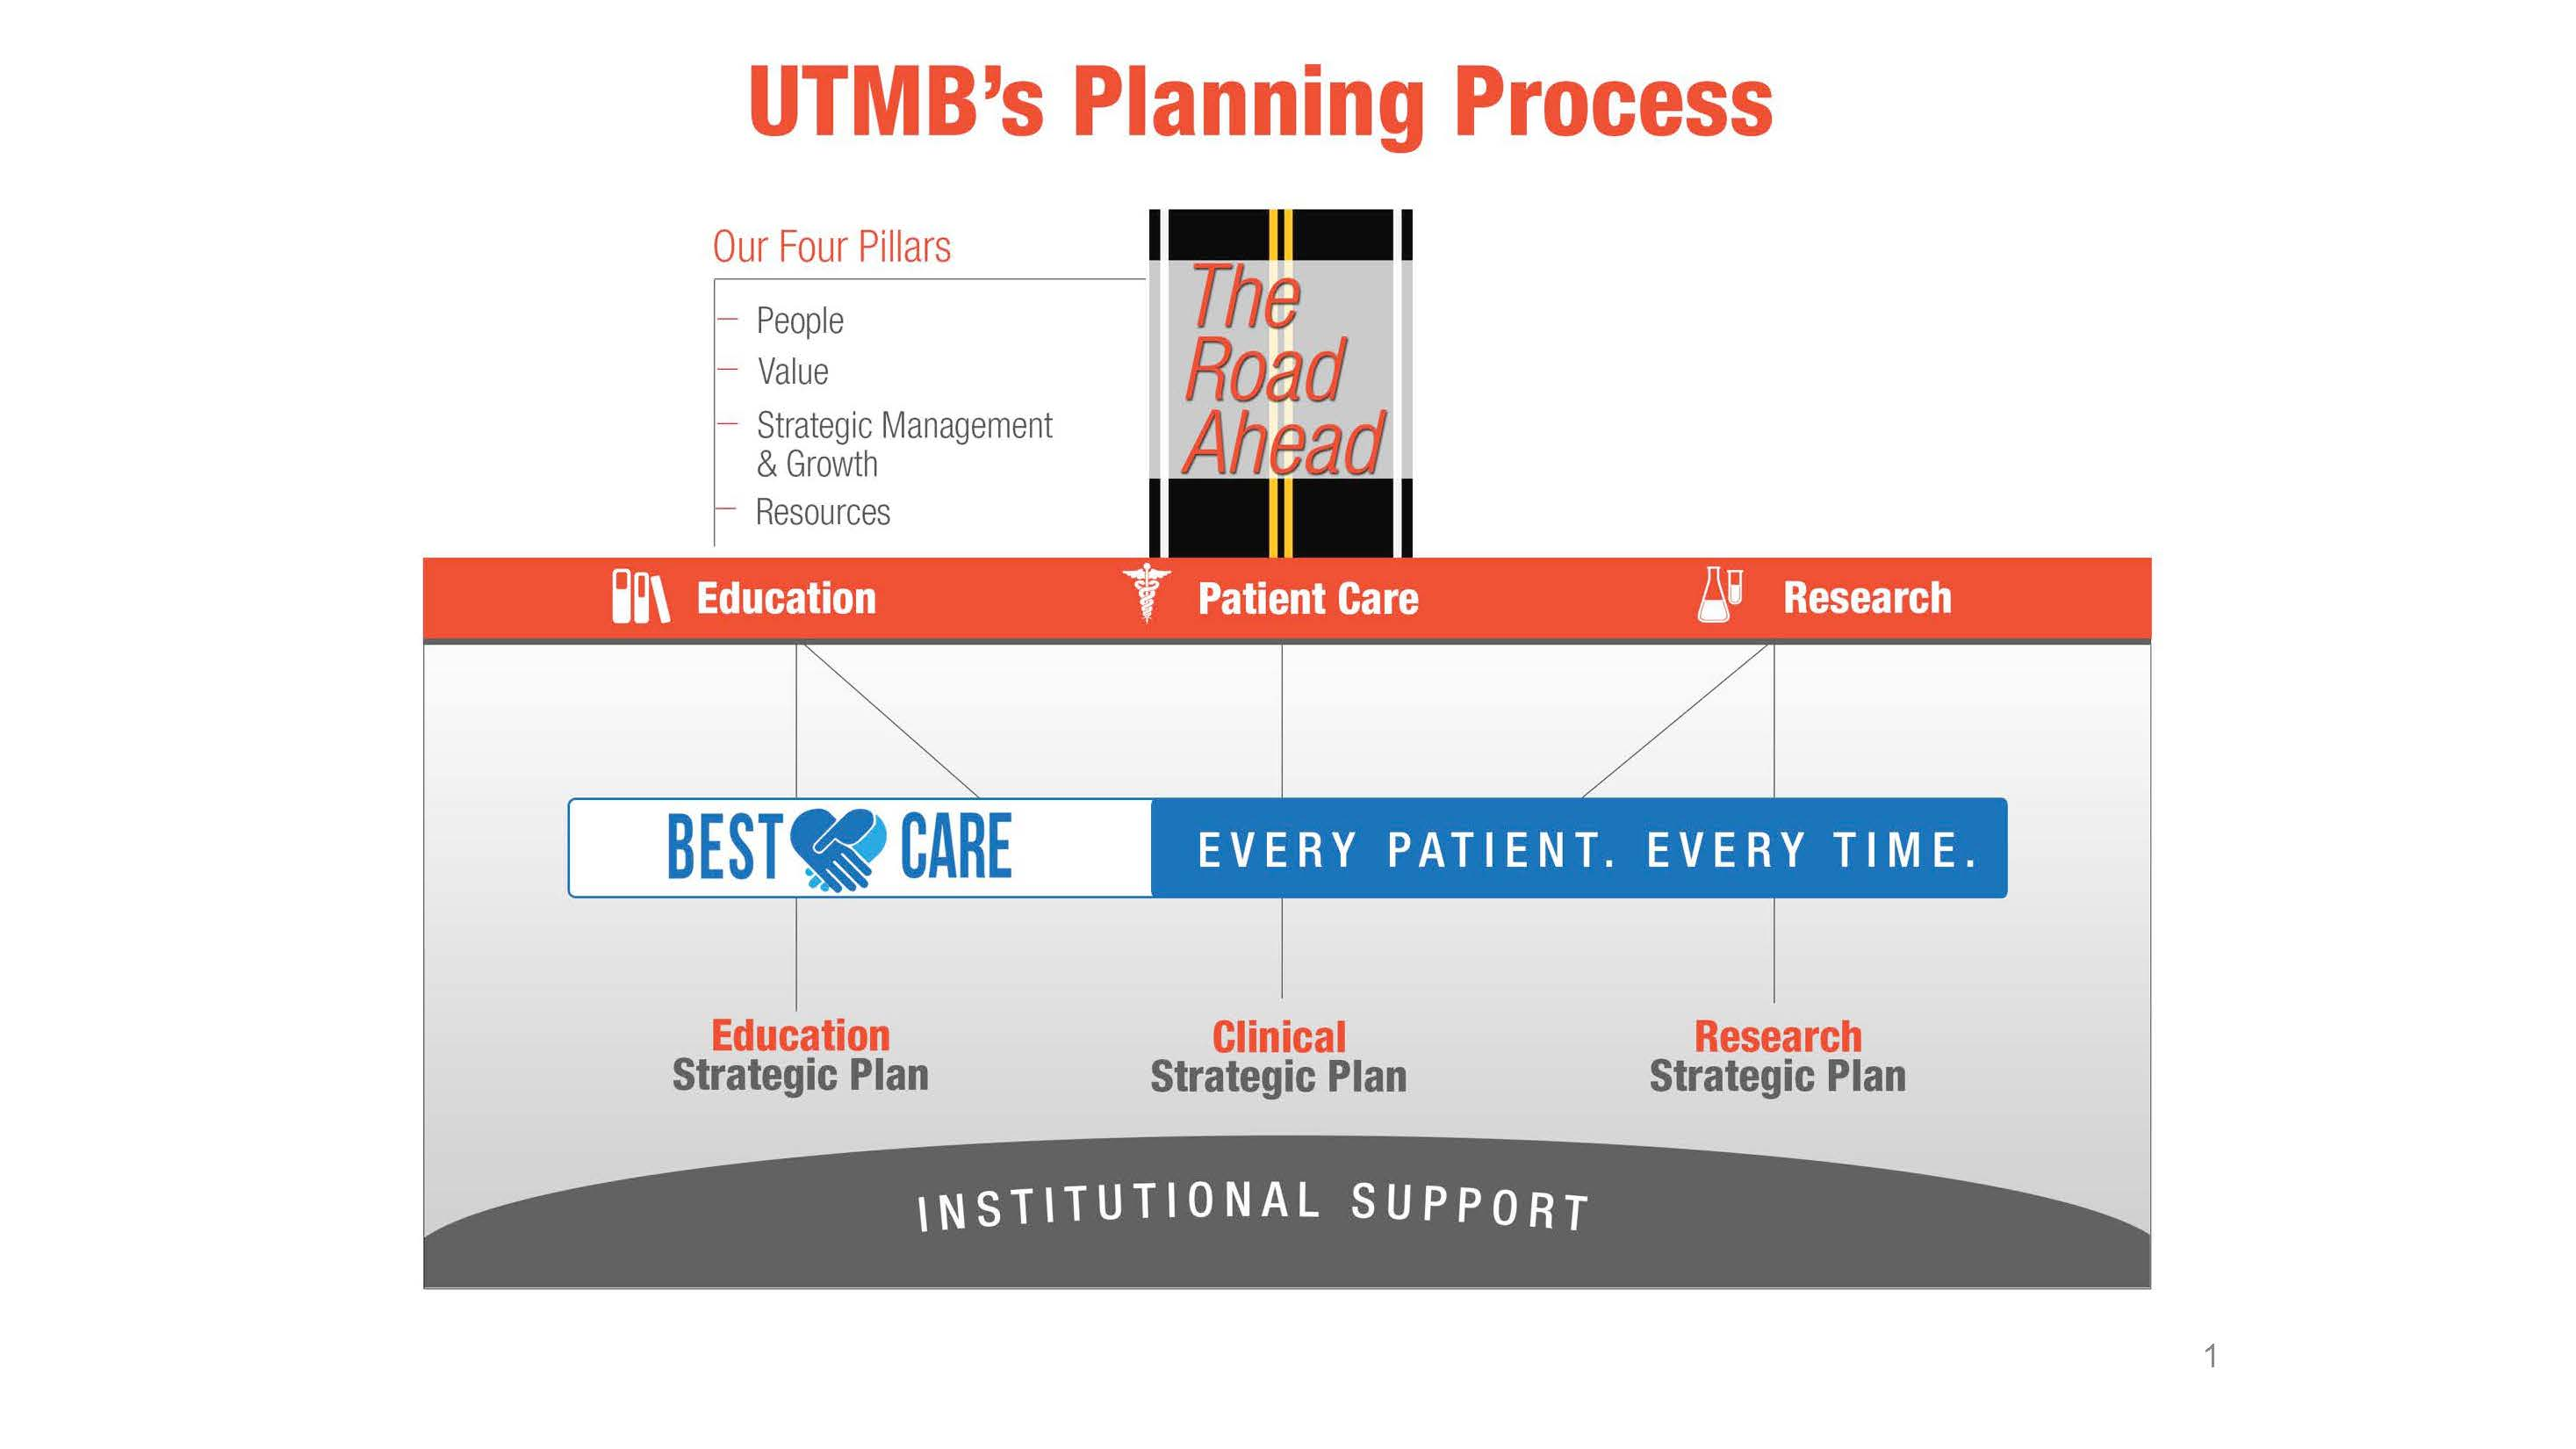 Strategic Plans_UTMB